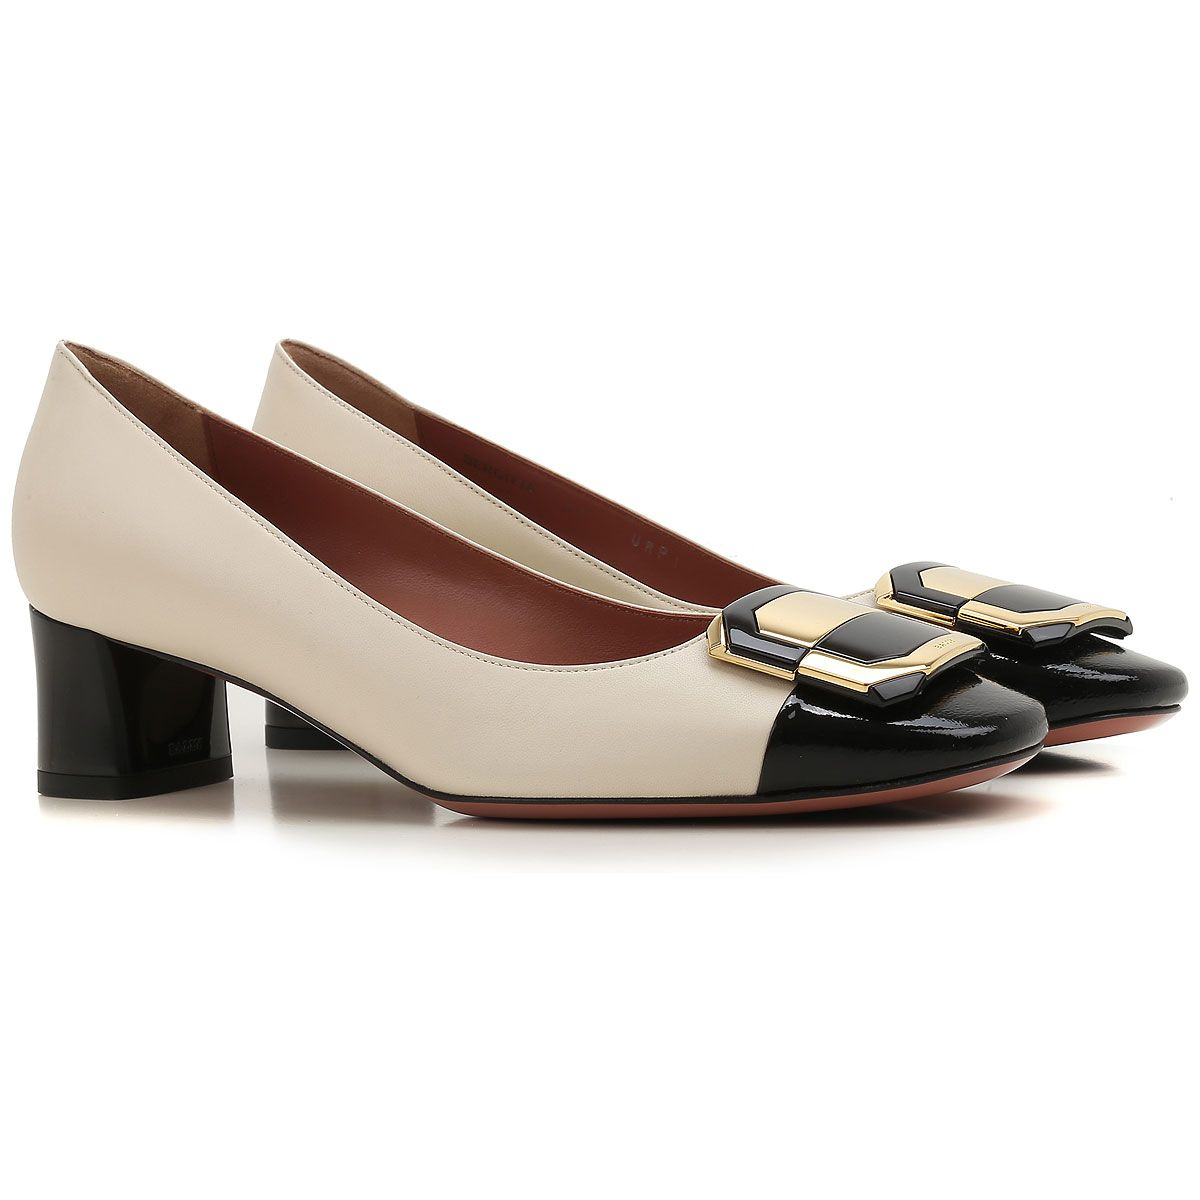 Offers Bally Womens Shoes from the